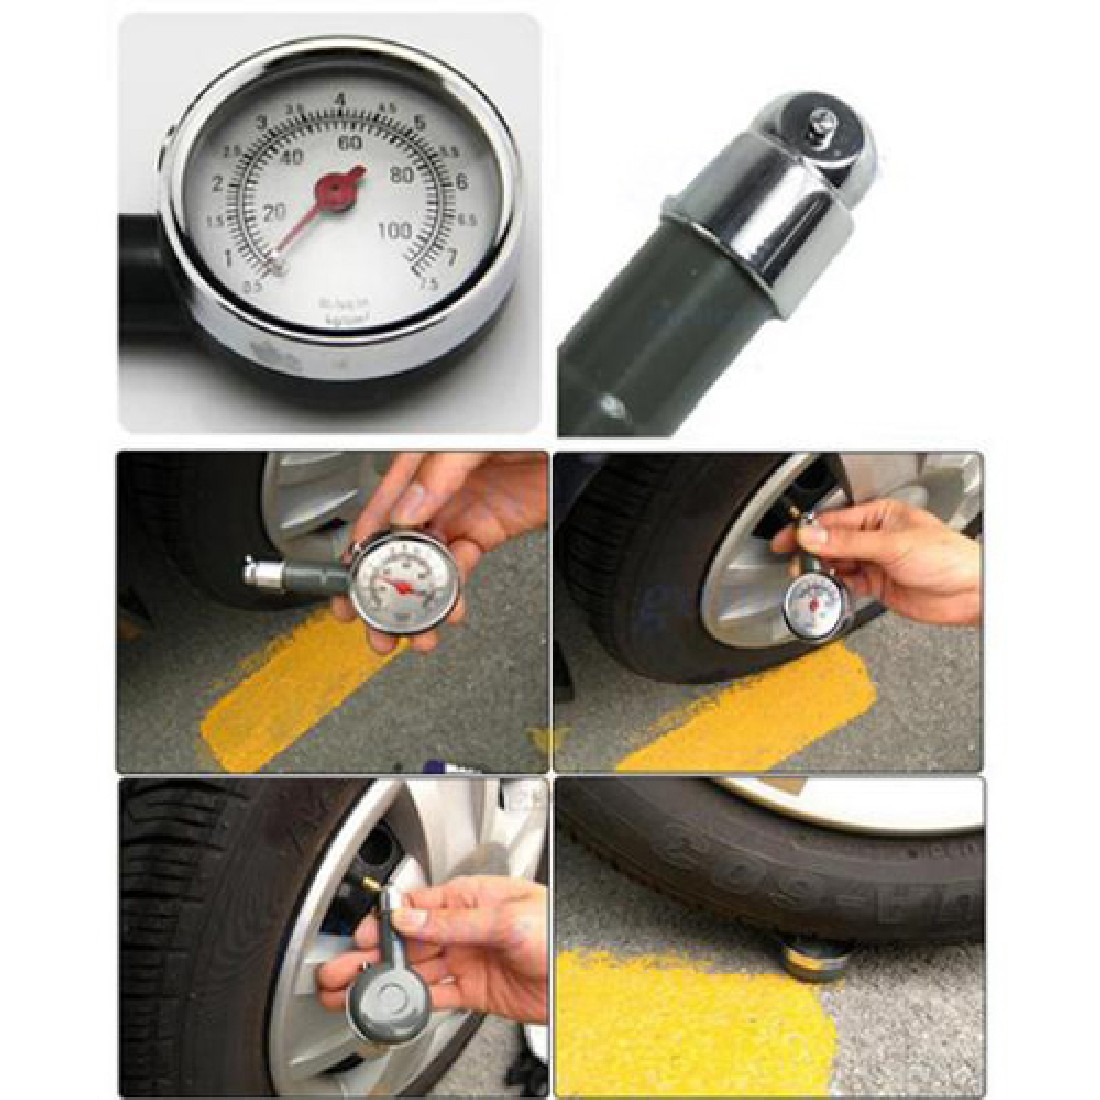 1pcs metal car tire pressure gauge auto air pressure meter tester diagnostic tool second hand. Black Bedroom Furniture Sets. Home Design Ideas